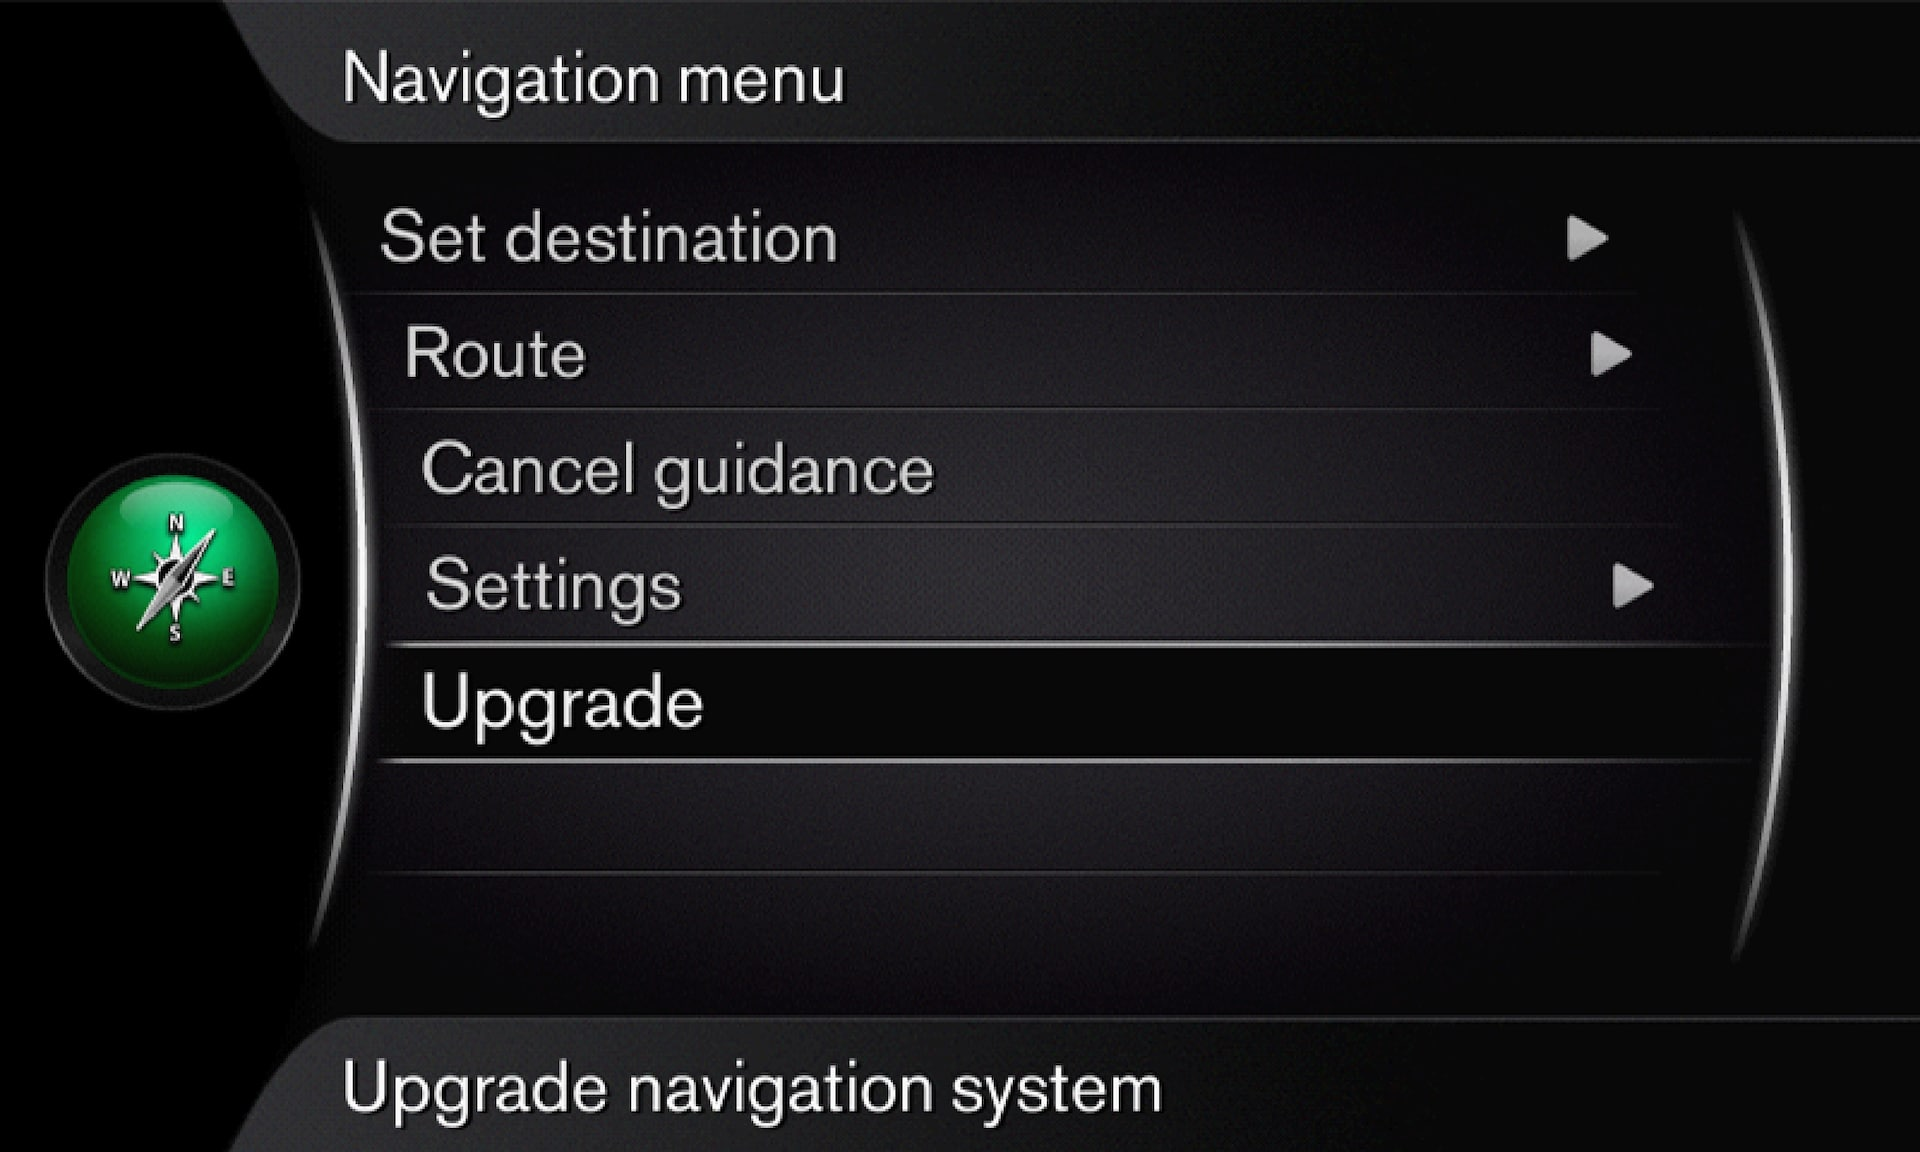 P3/P4 - Support site - Sensus Navigation menu - Upgrade navigation system